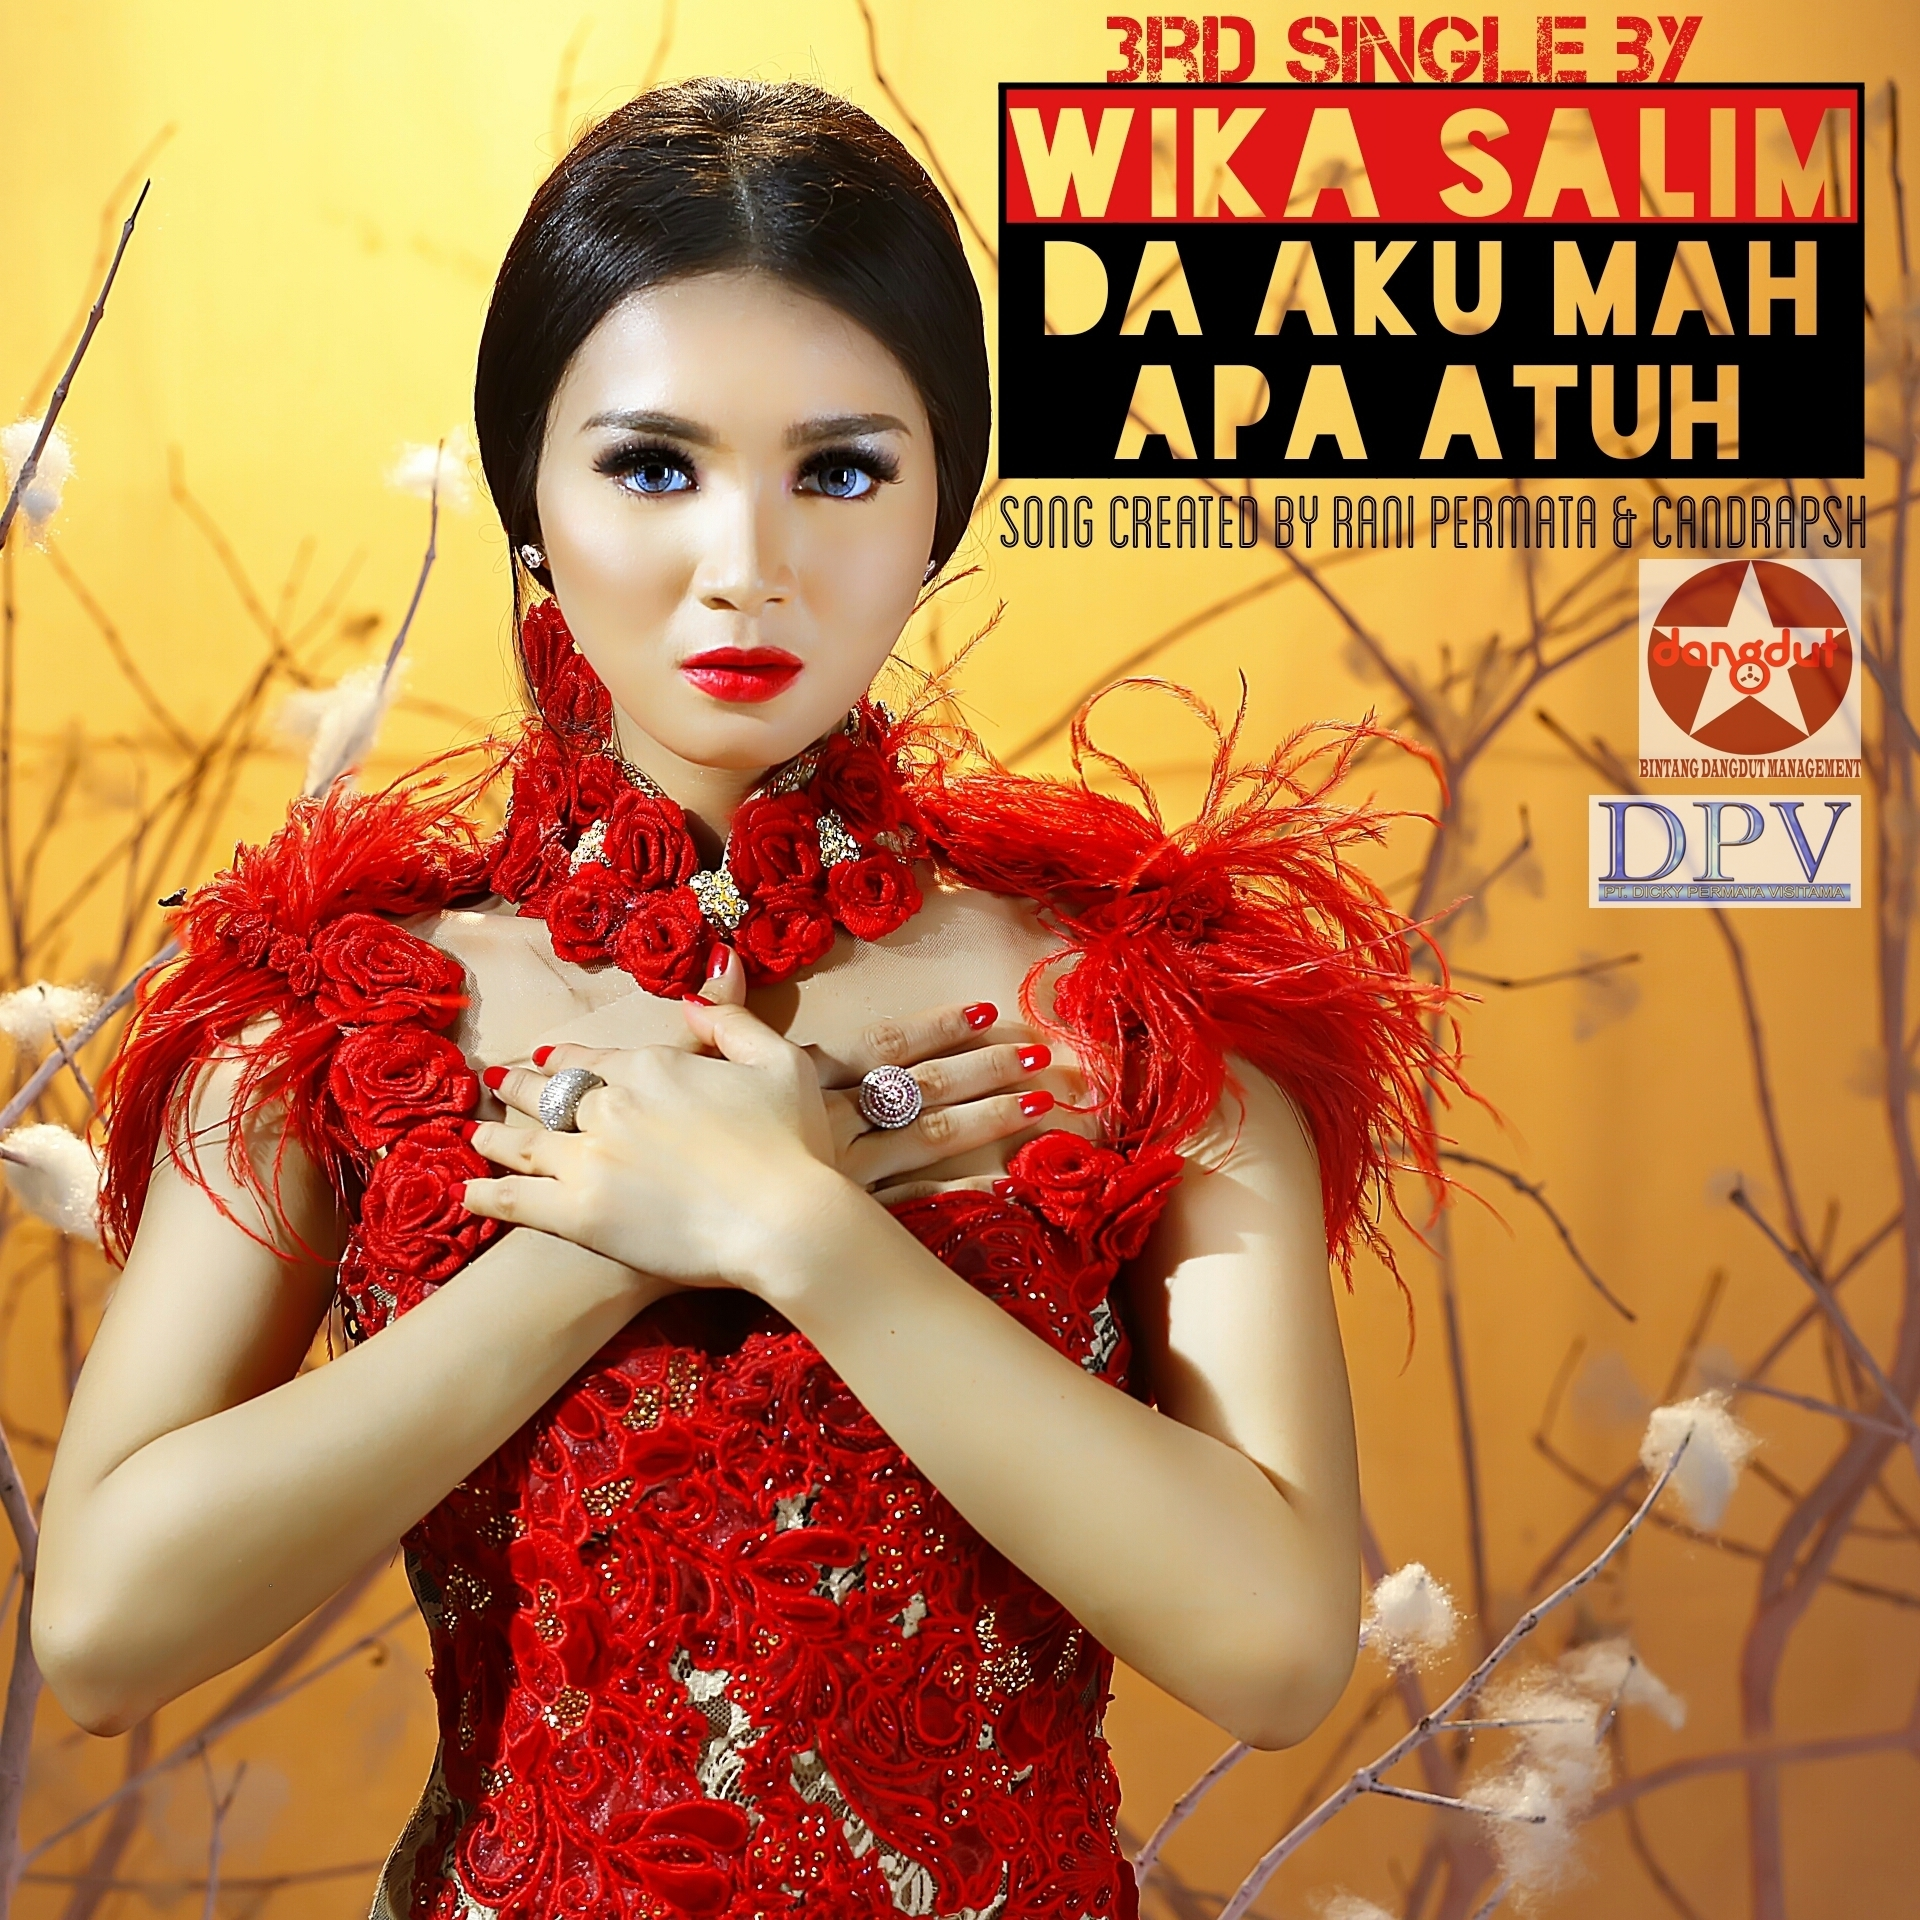 Wika Salim | ReverbNation